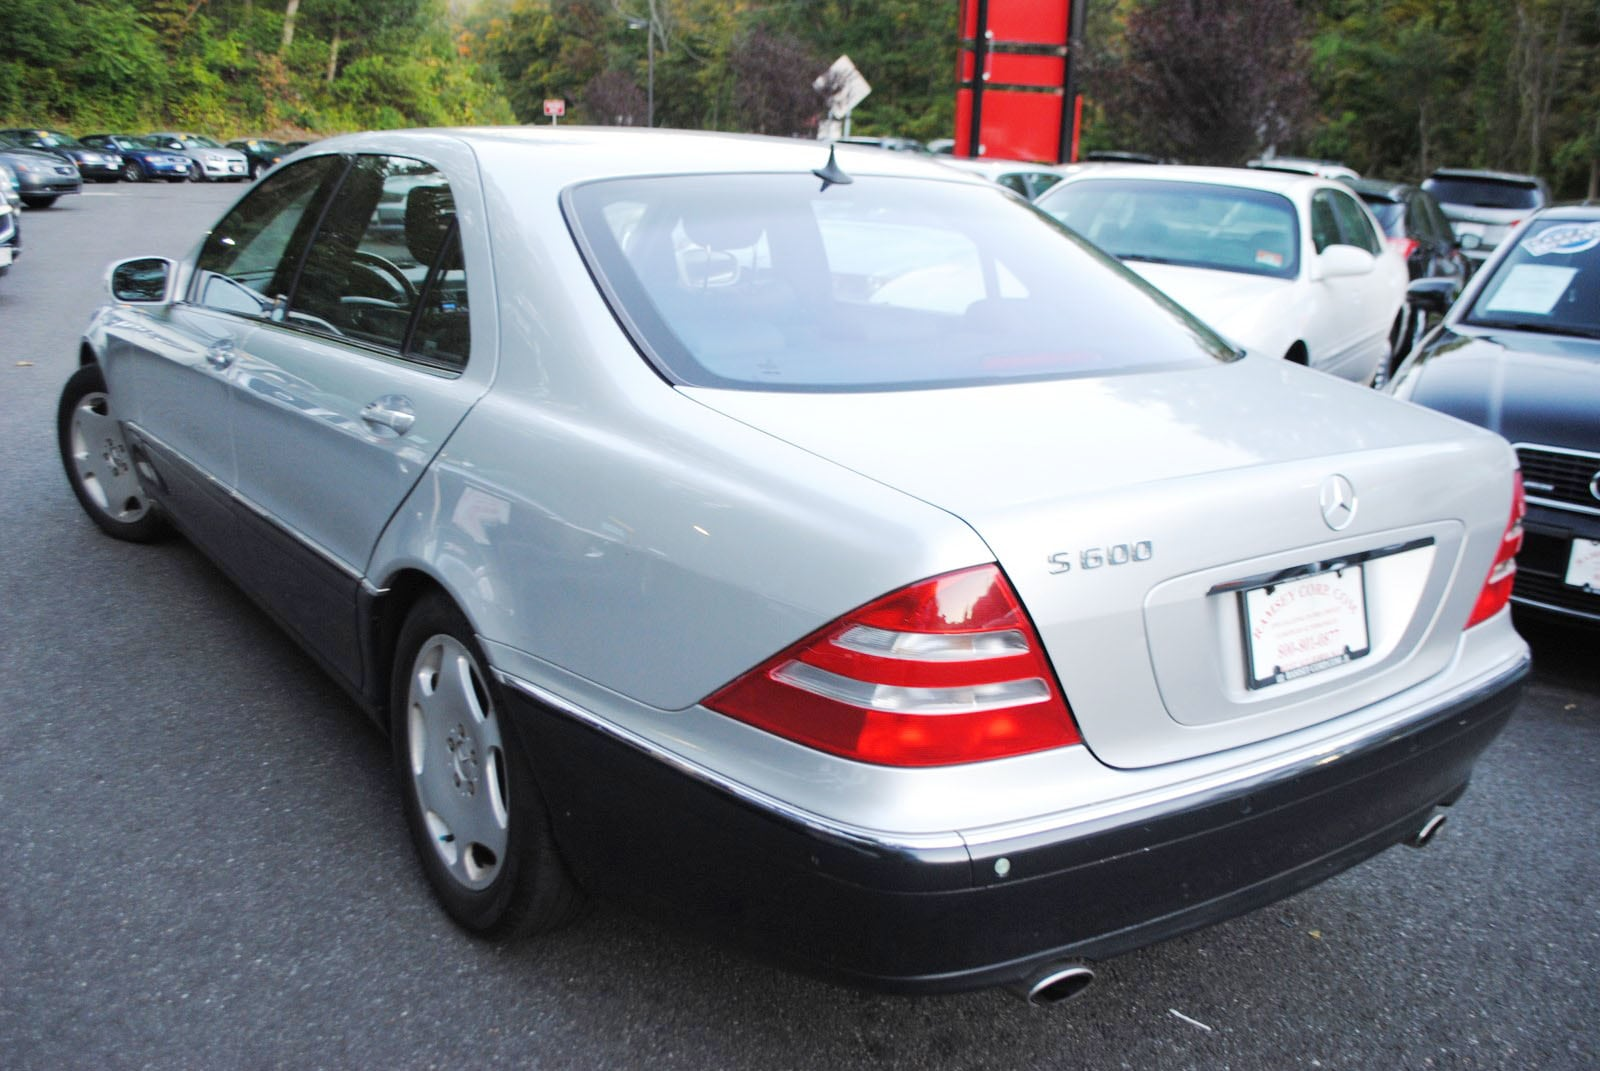 Used 2001 mercedes benz s class for sale west milford nj for 2001 mercedes benz s500 for sale